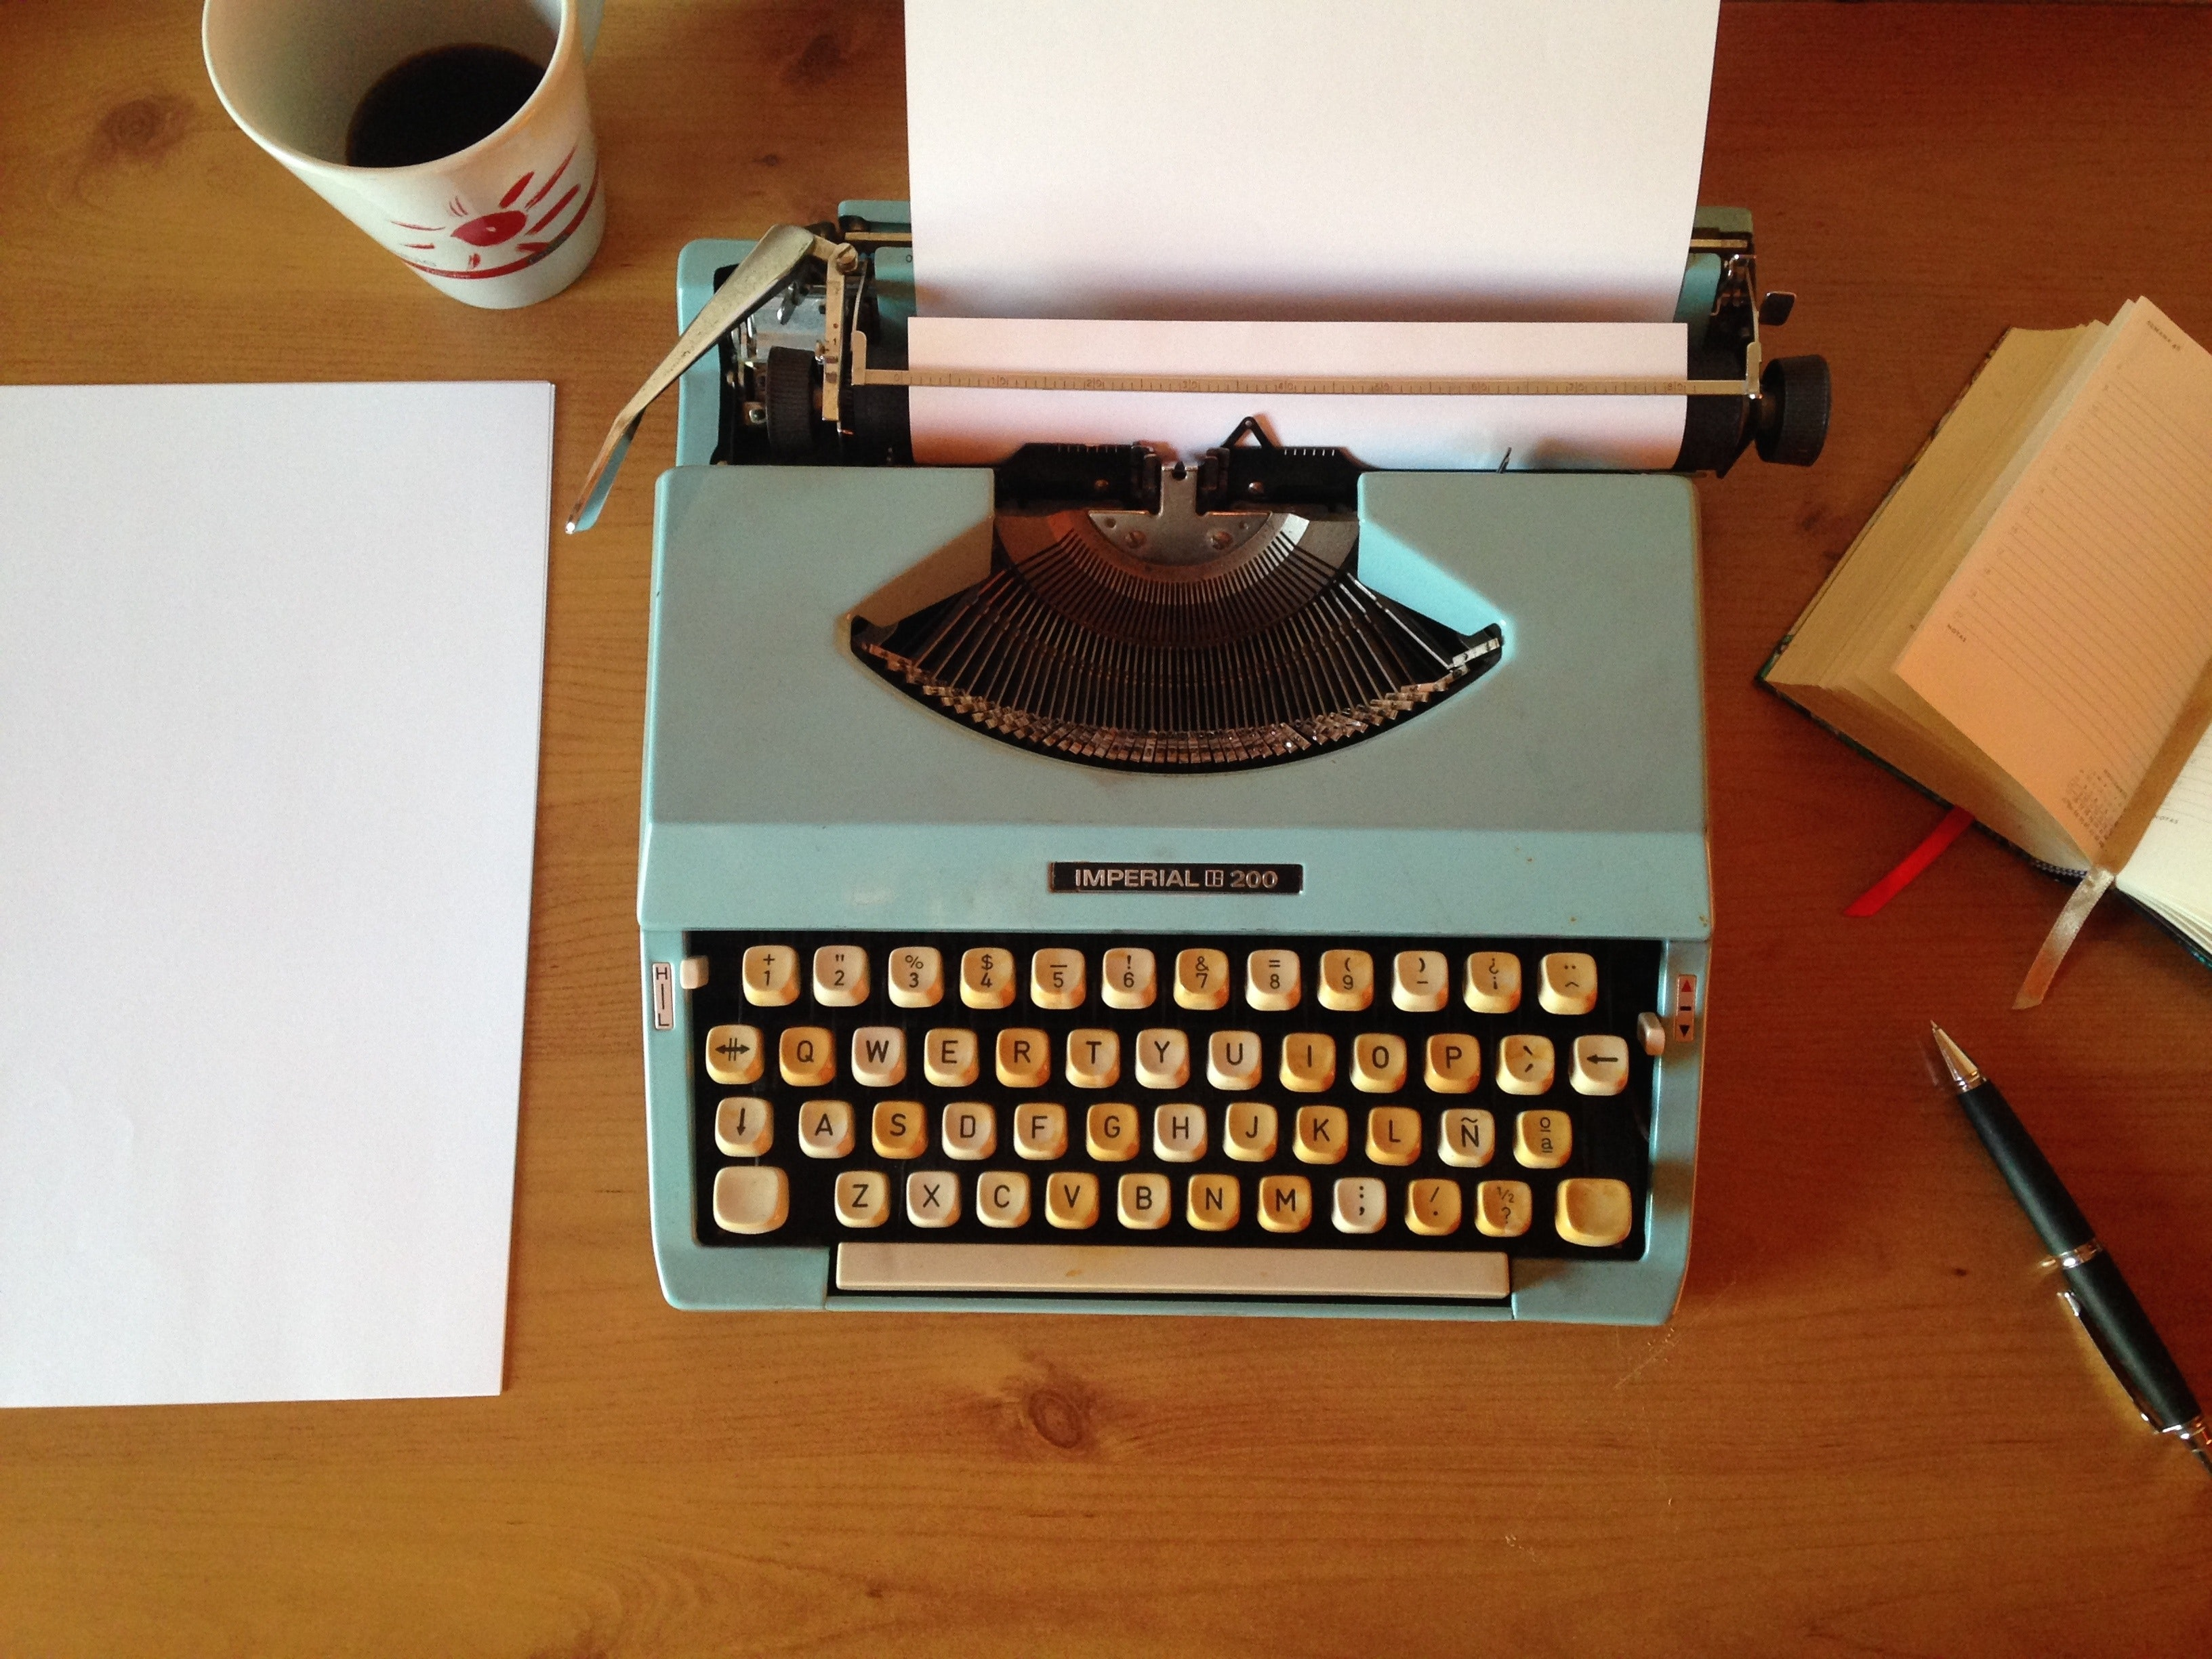 a typewriter sits on a table